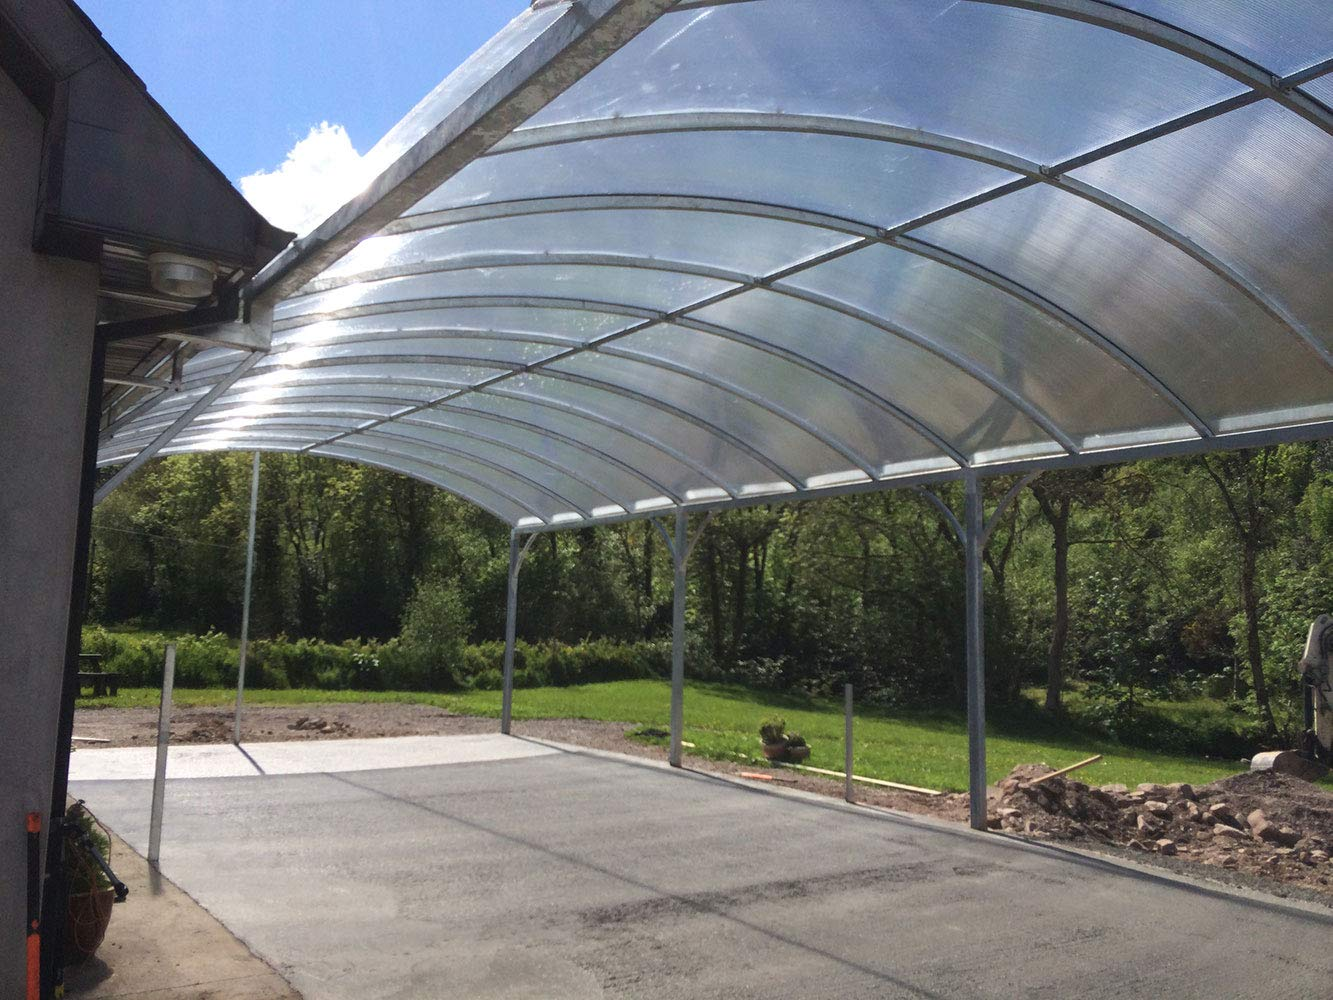 Ecover 5.5Mil Greenhouse Plastic Cover Polyethylene Clear Film for Garden Plant Cover, 12 x 50ft by Ecover (Image #6)